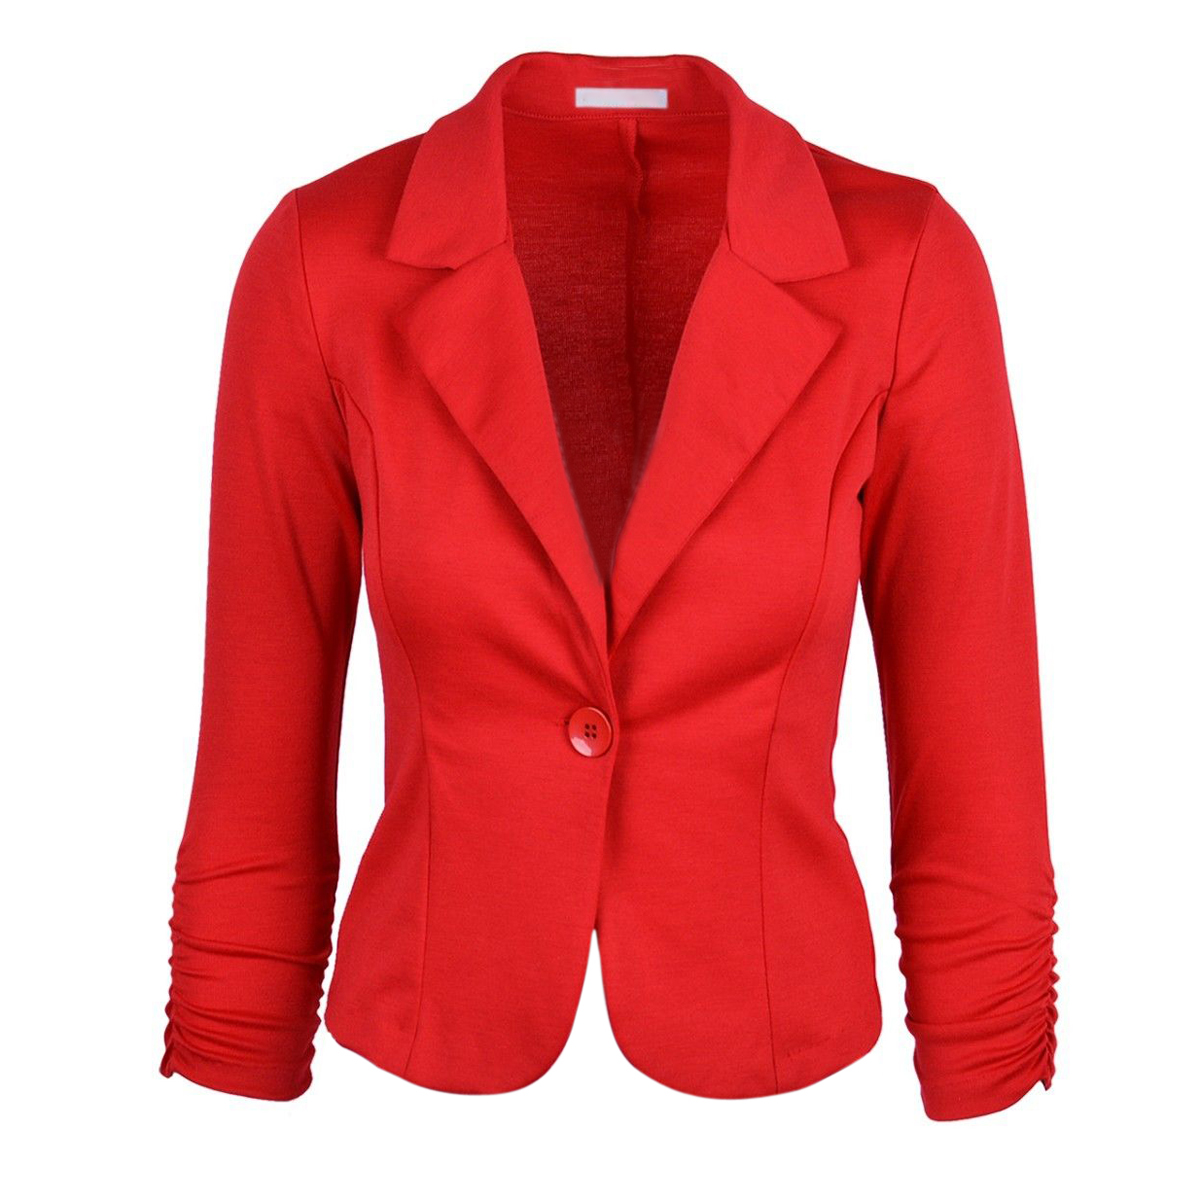 Popular Red Blazer Women-Buy Cheap Red Blazer Women Lots From China Red Blazer Women Suppliers ...